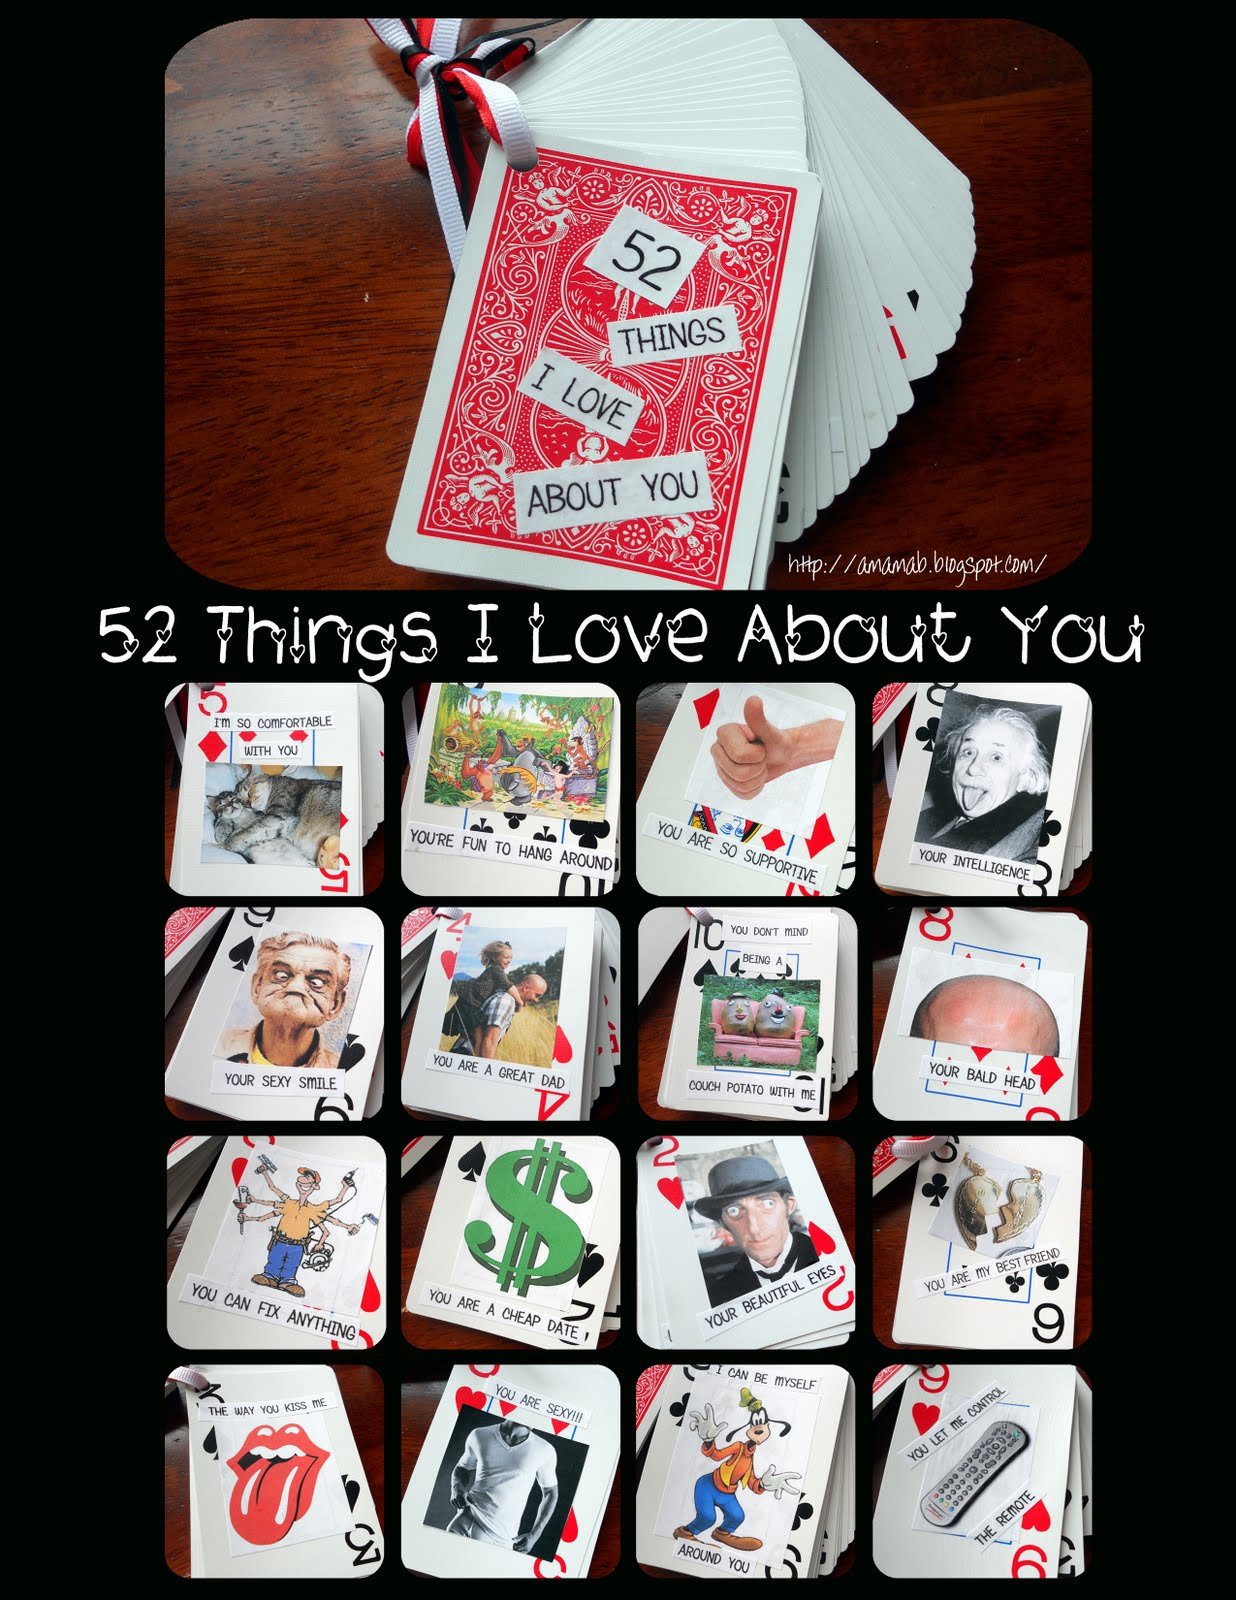 A Mama Bs: 52 Things I Love About You